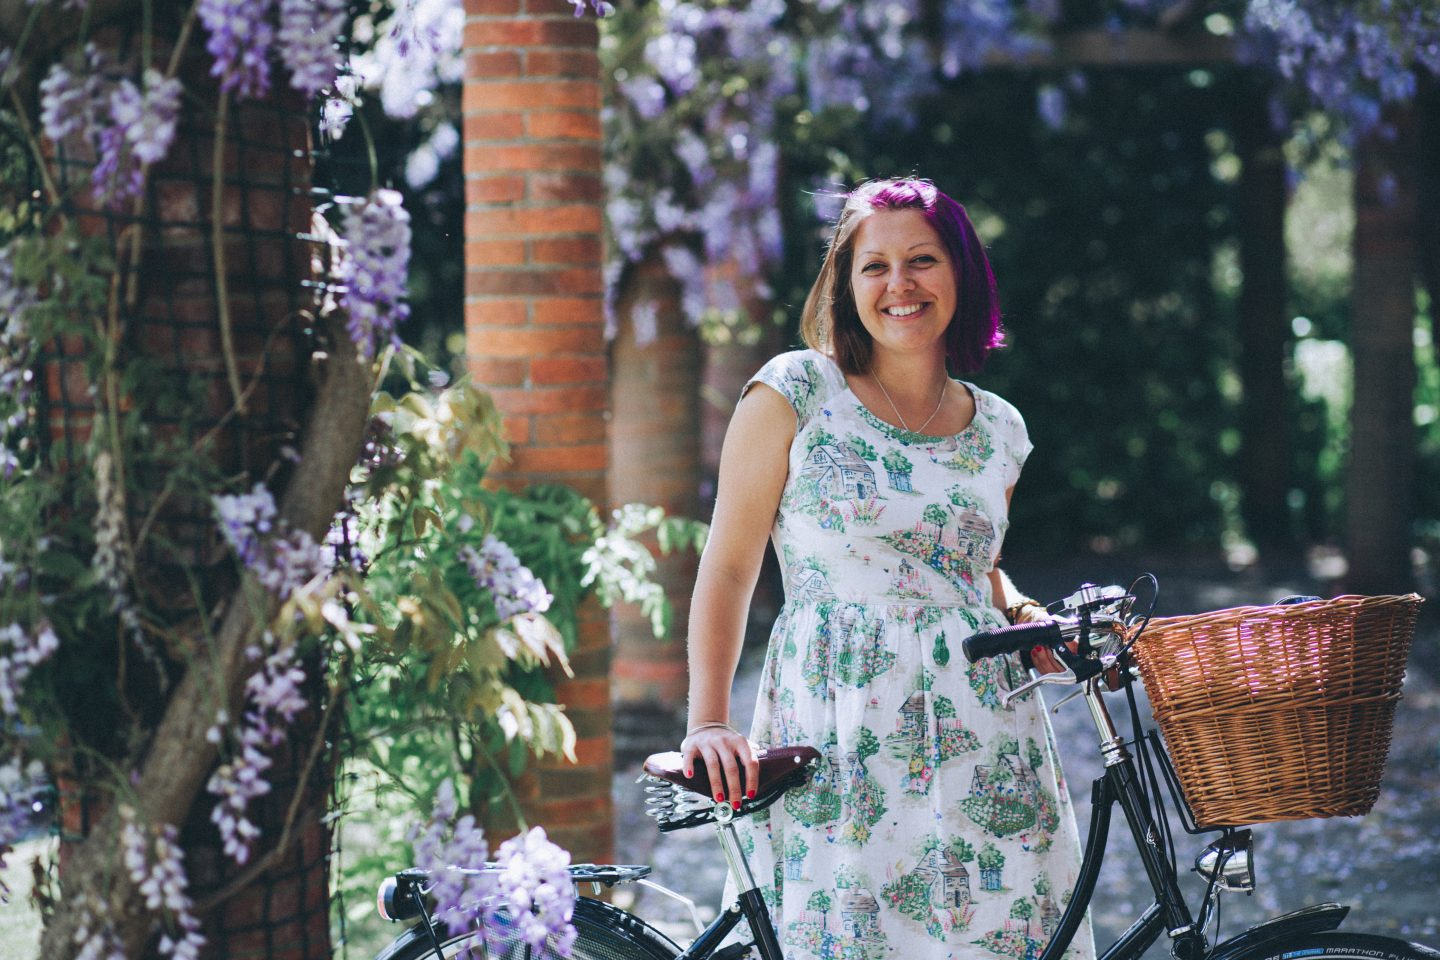 A photo of me standing under some wisteria holding my bike for a post about anxious overwhelm. People often don't believe I suffer from anxiety as I appear so confident. From my Jenny Giles Photography headshot photo session.